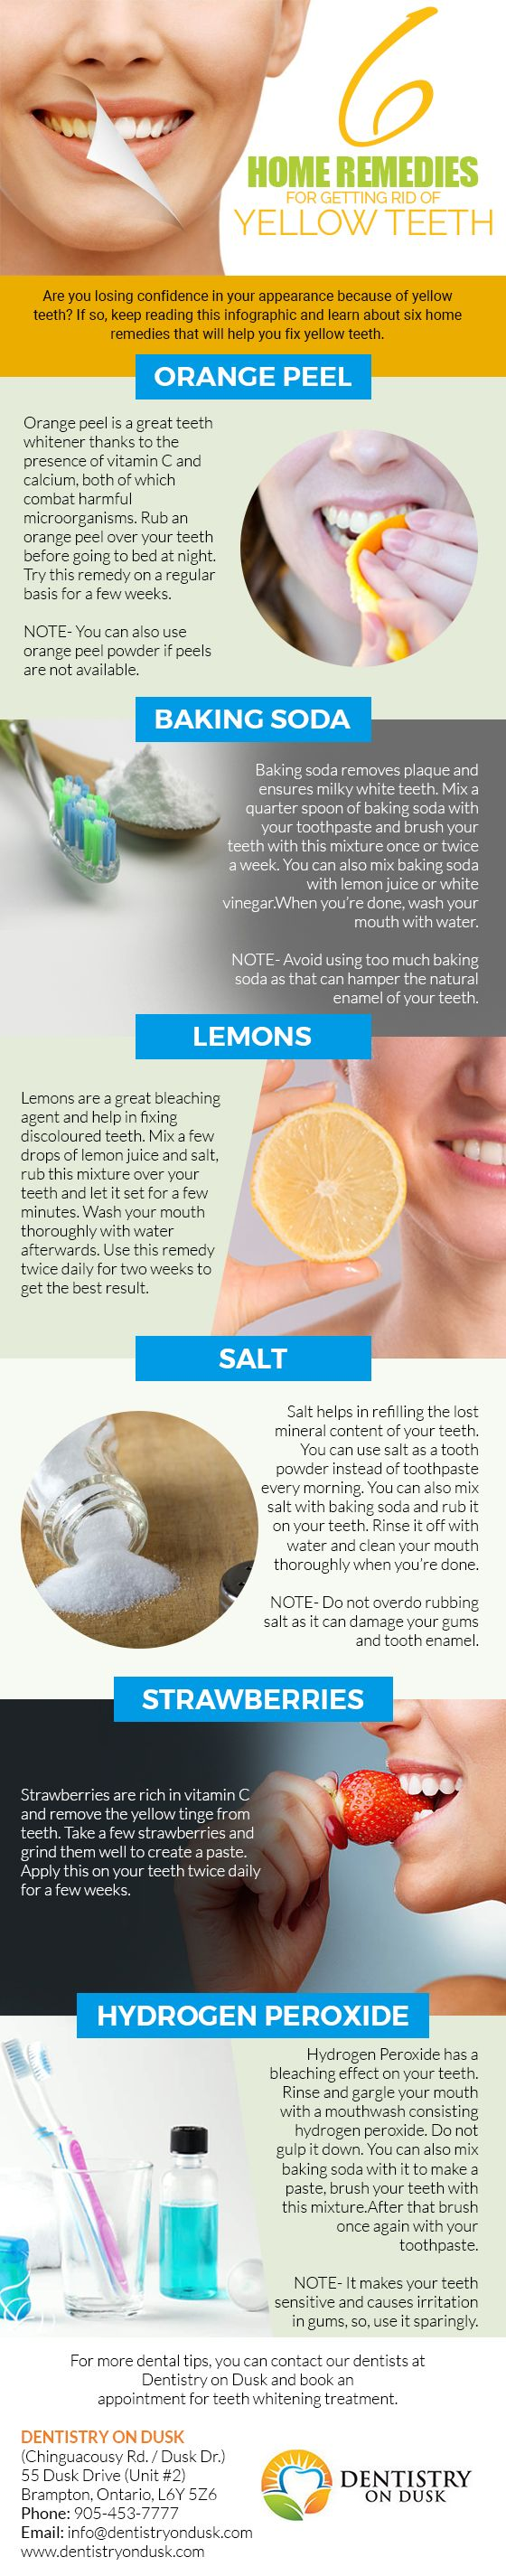 Home-Remedies-for-Getting-Rid-of-Yellow-Teeth